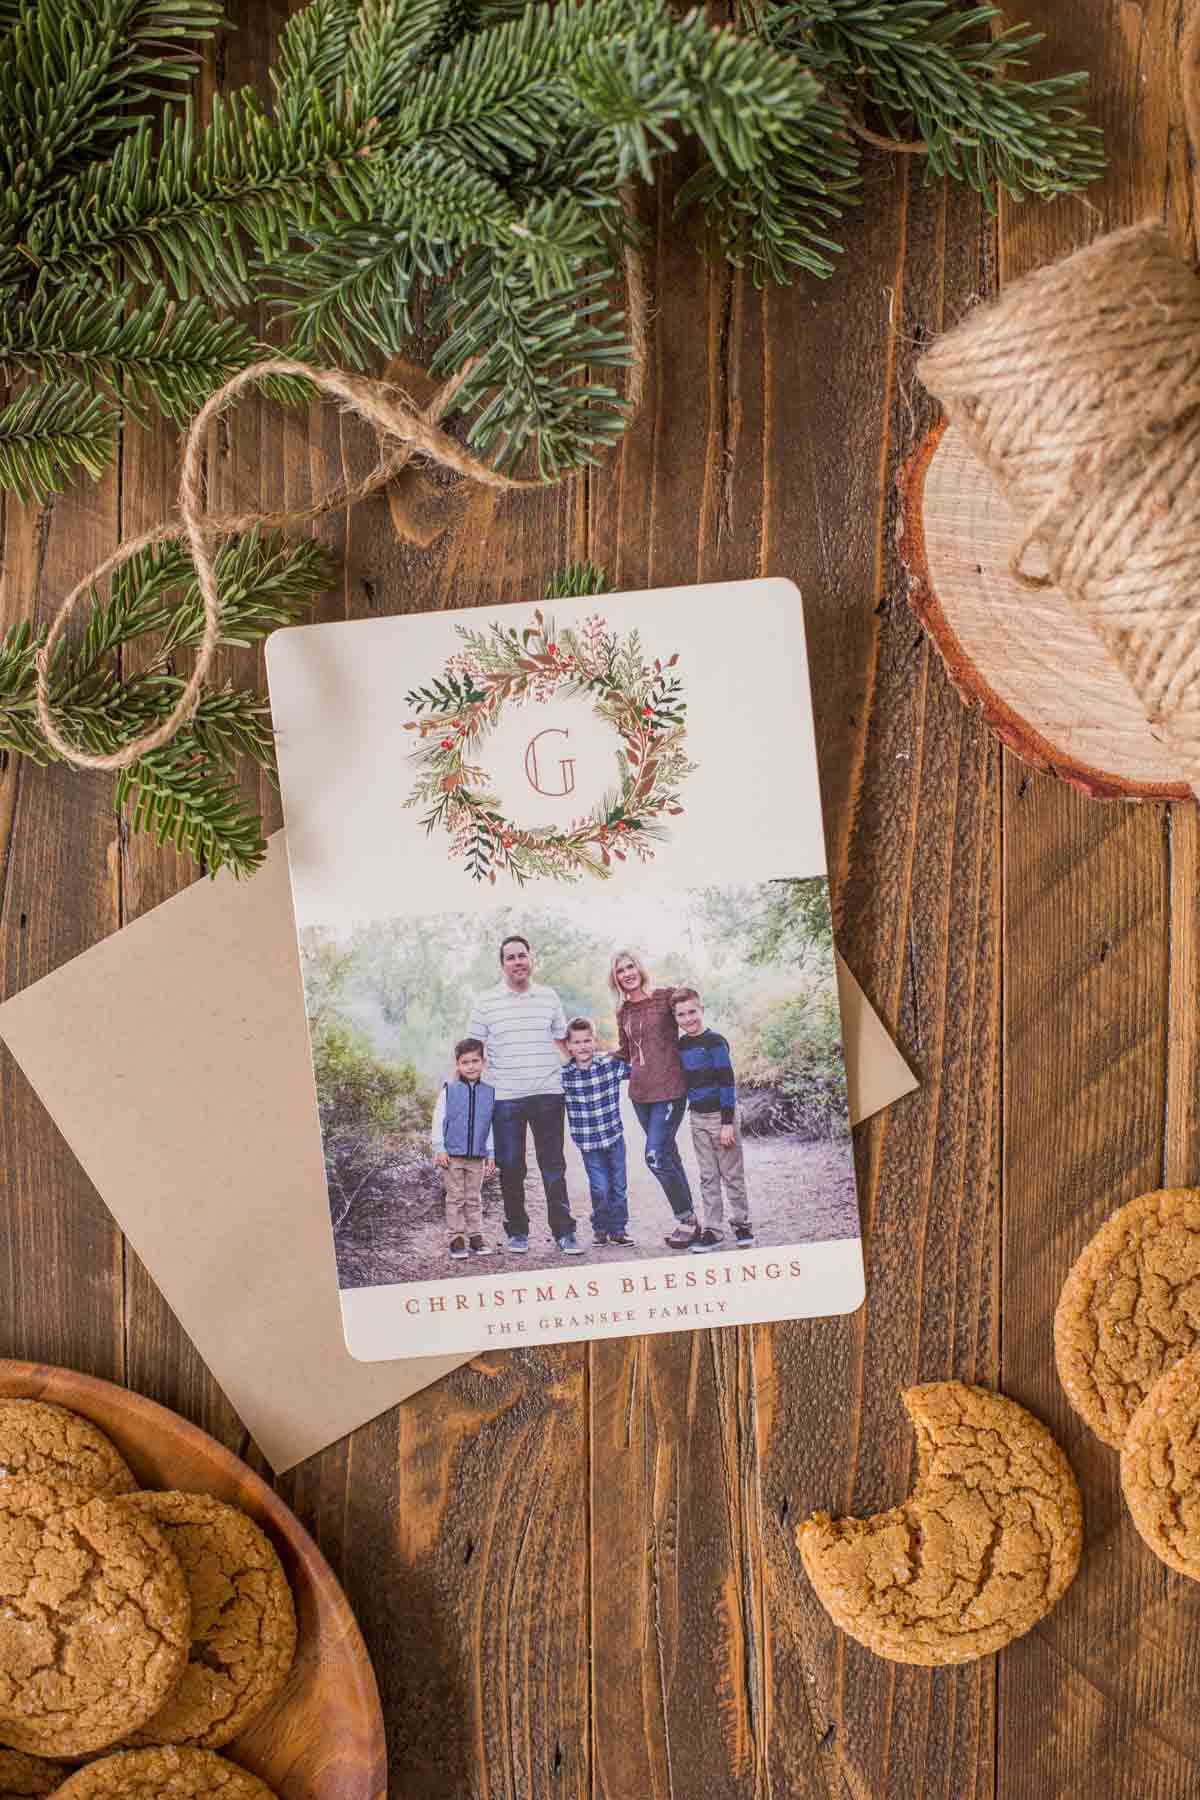 A Christmas Card that is sitting next to a plate of Old Fashioned Ginger Snaps, and some more Old Fashioned Ginger Snaps on the other side of the card, with a bite taken out of one of them.